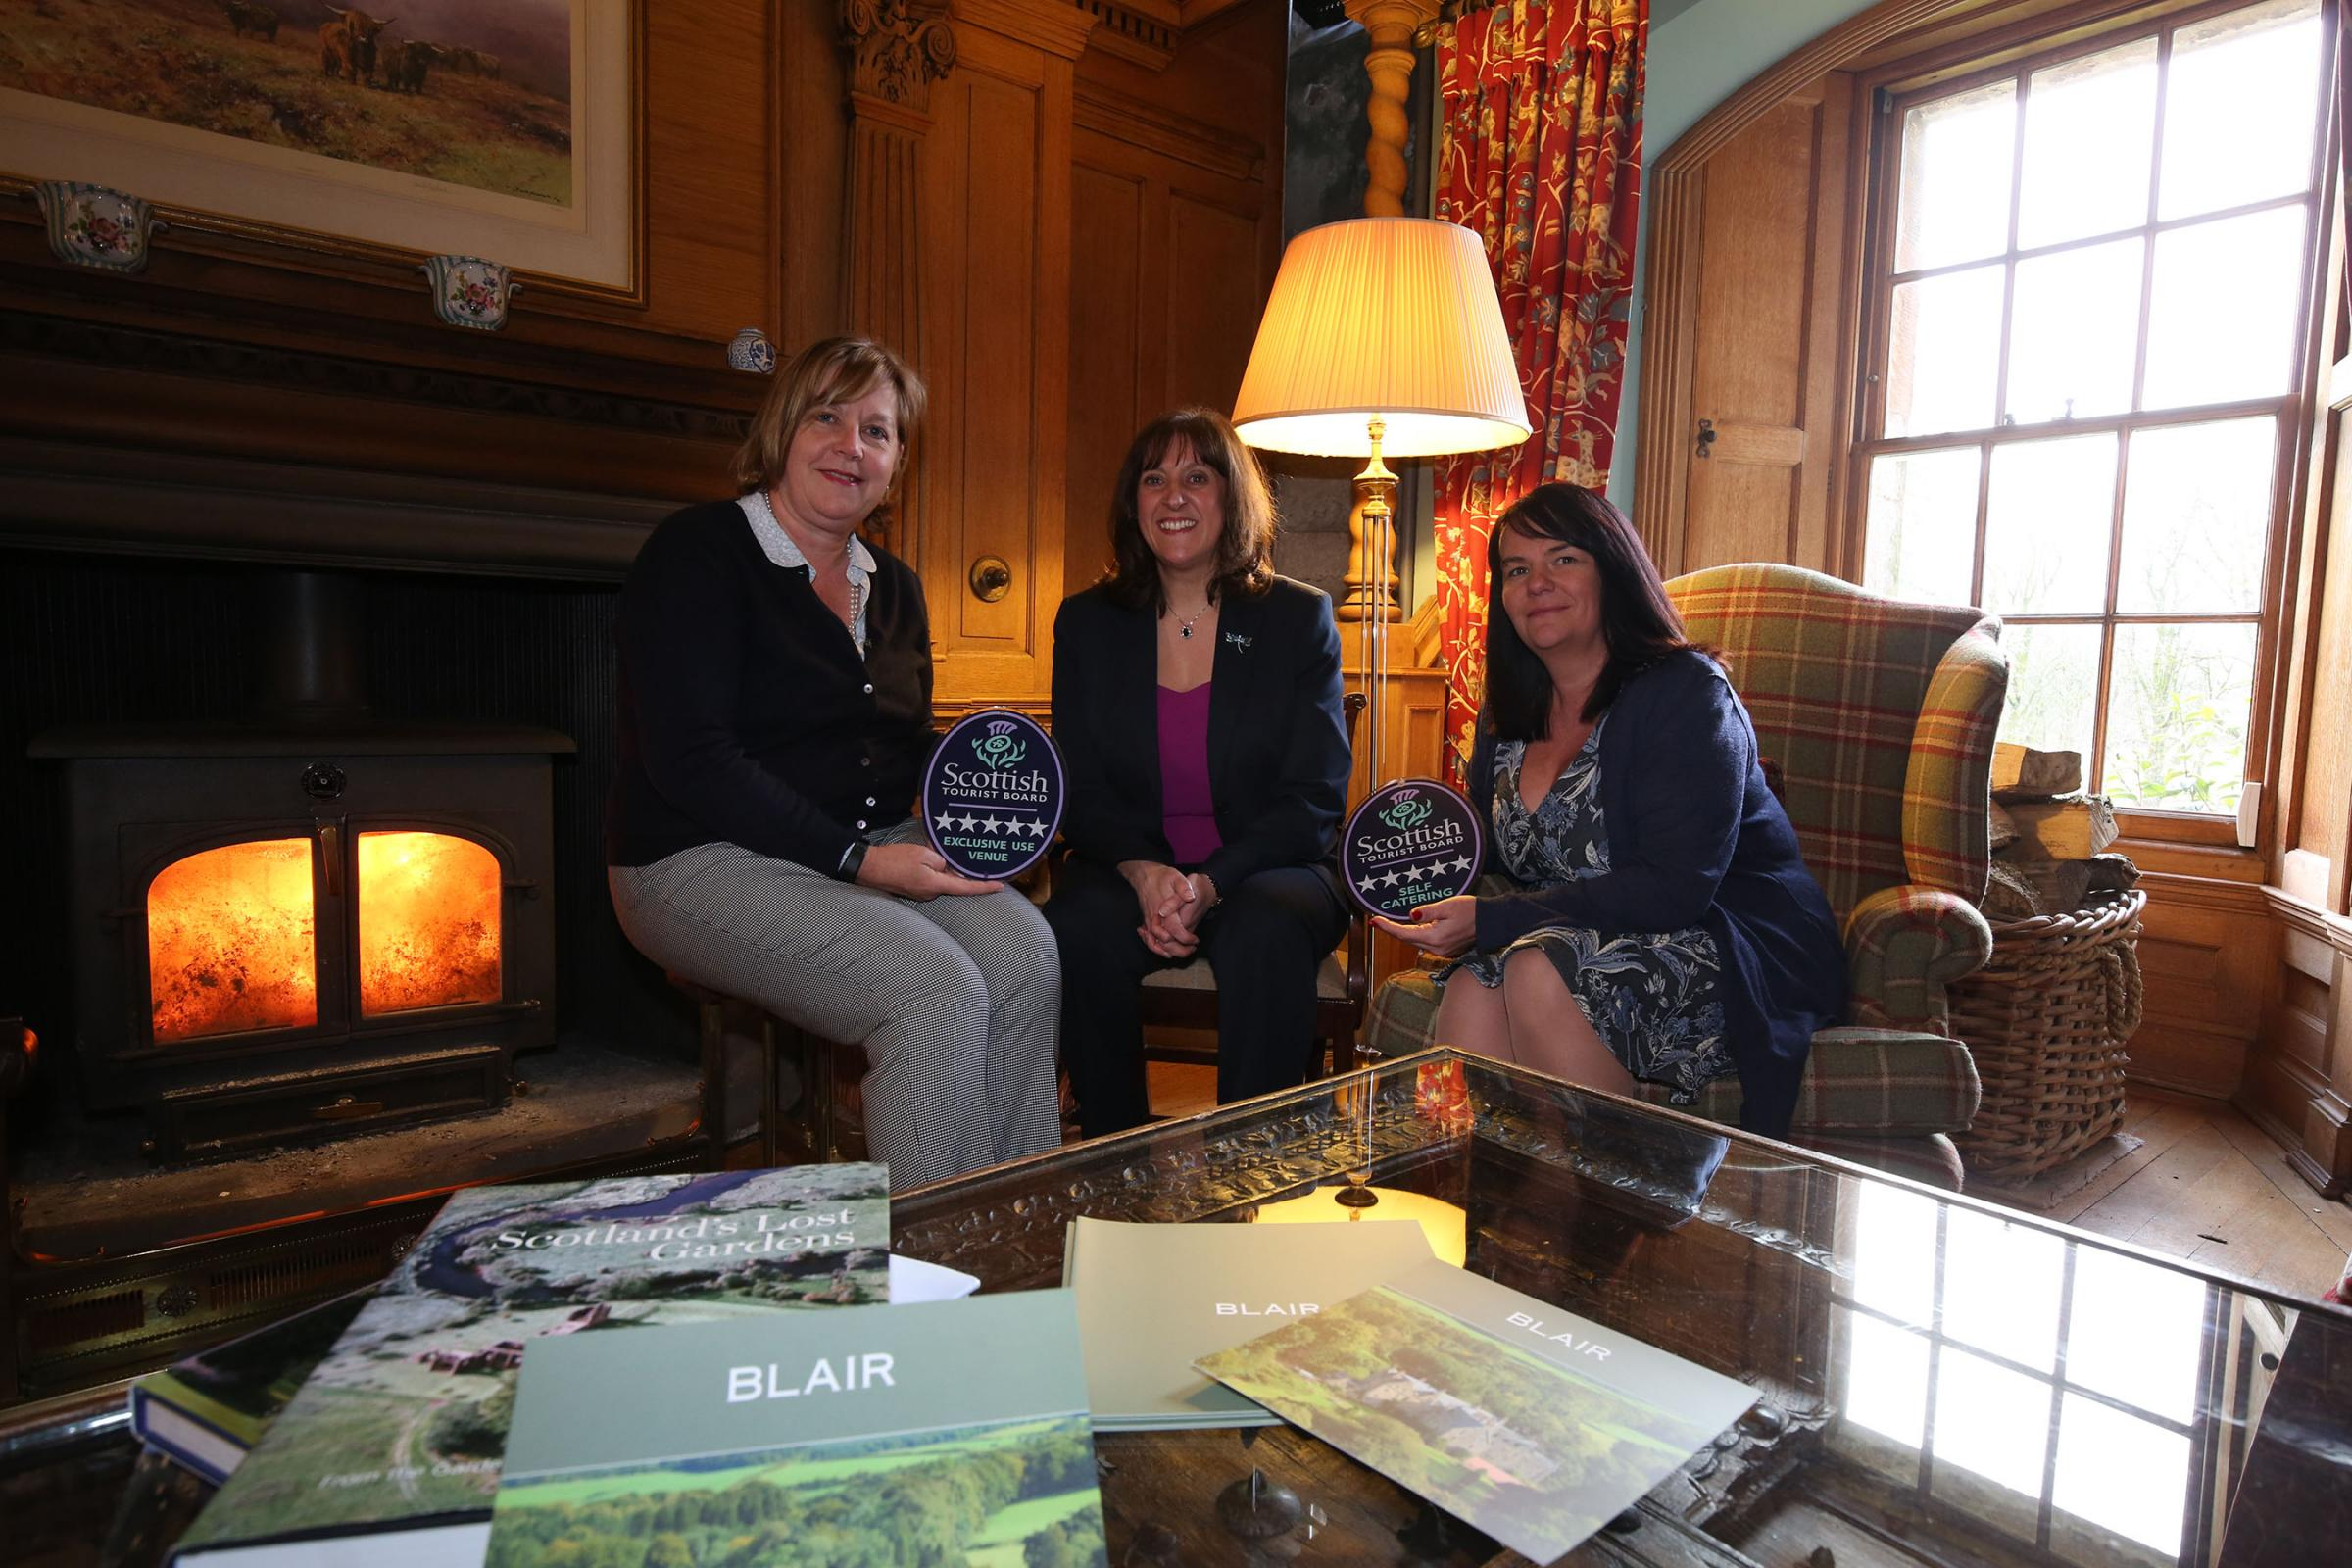 Sallie Hendry (left) and Annemarie Cullinane (right) from Blair Estate with VisitScotland Regional Director Annique Armstrong. Photo: Alister Firth